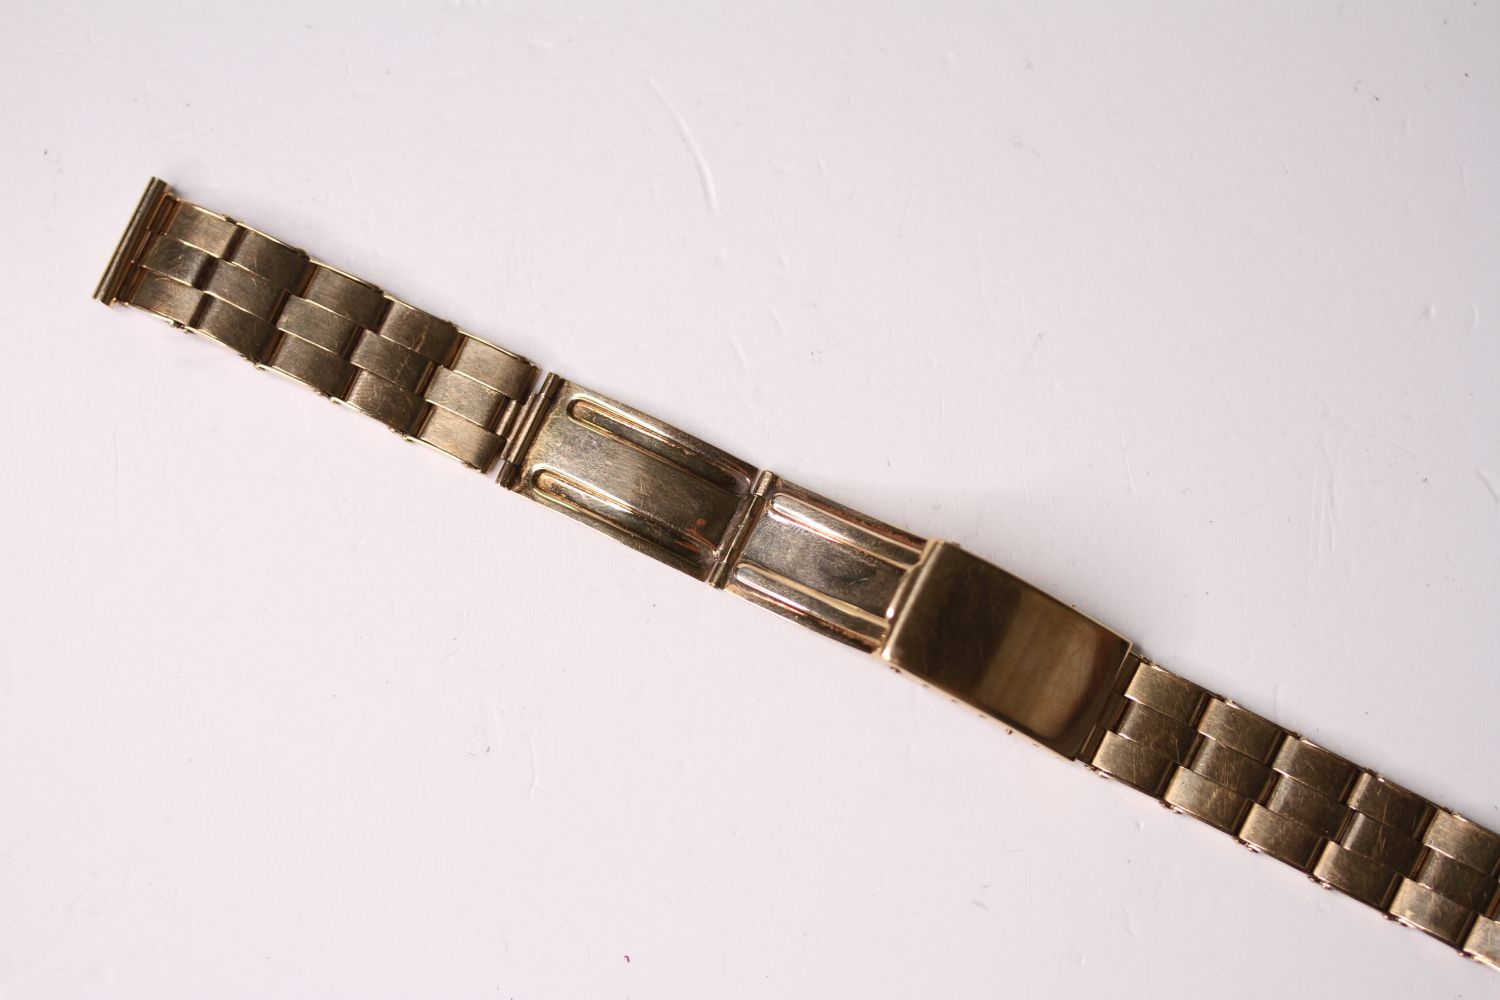 14CT VINTAGE EXPANDABLE BRACELET, stamped 14ct yellow gold, mecan 1956, approximately 35.1g. - Image 2 of 3